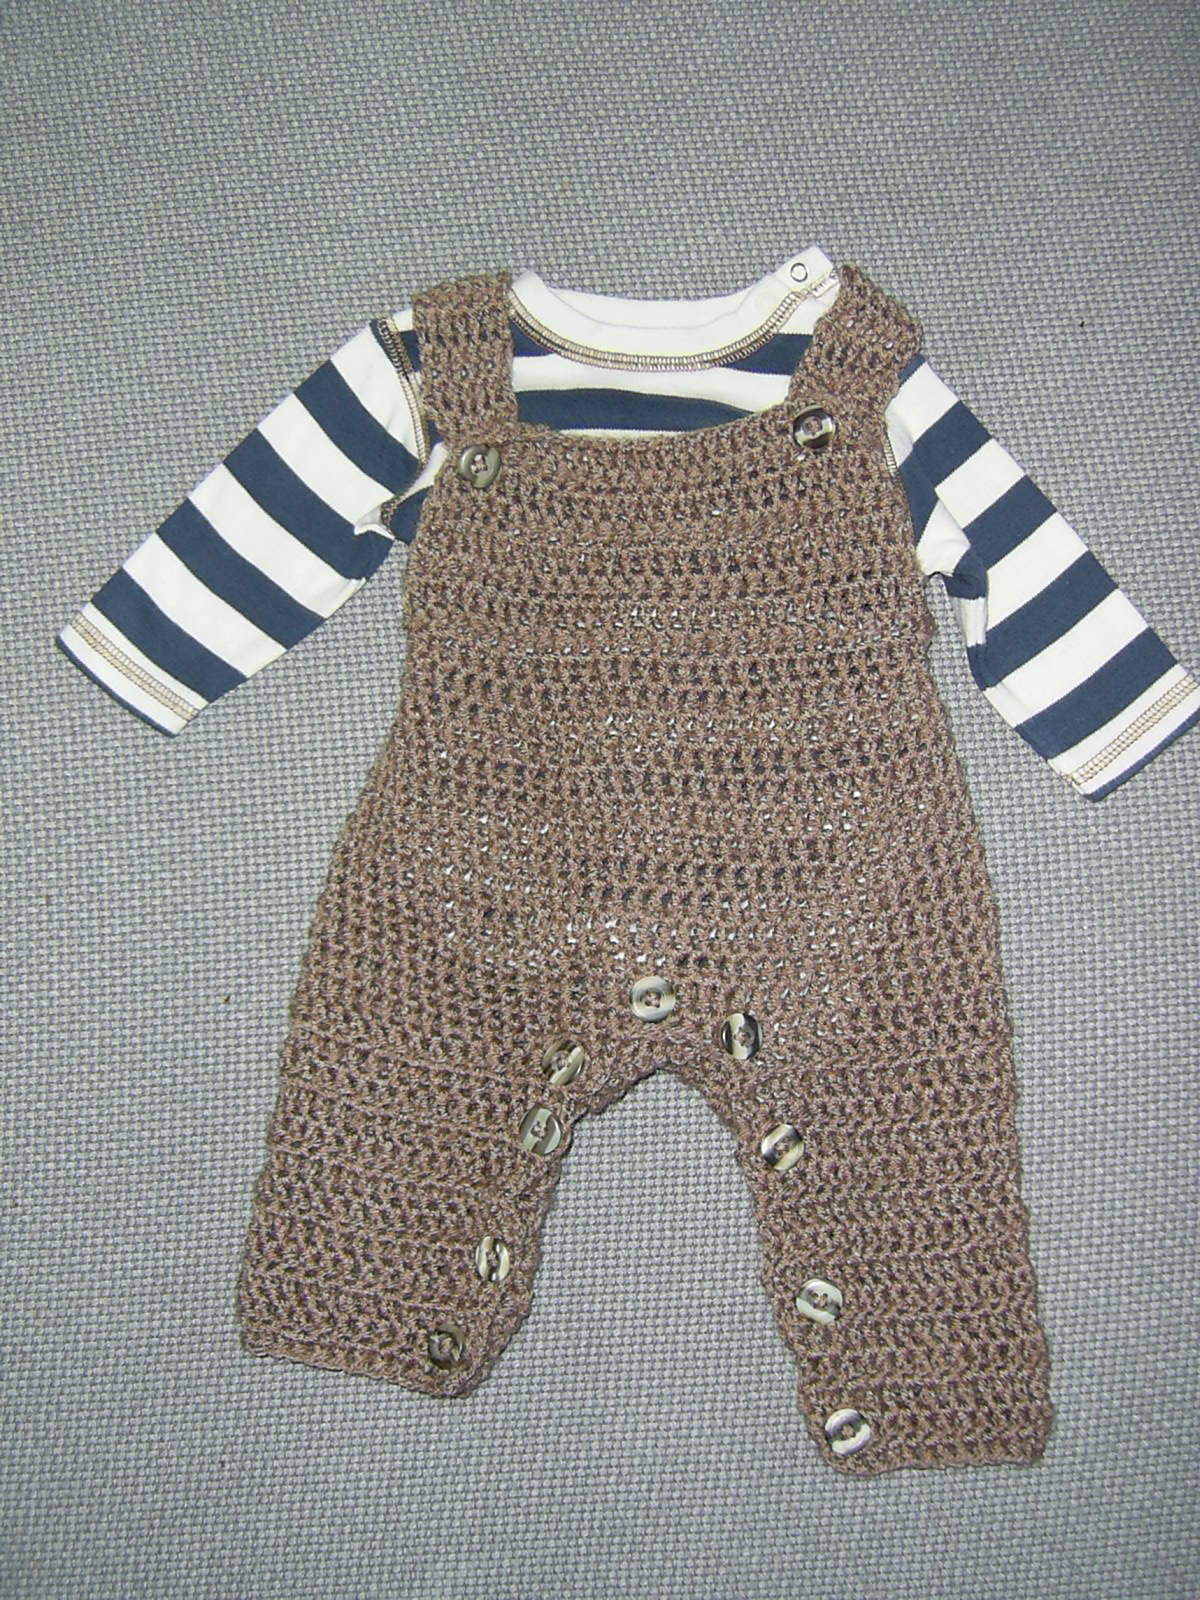 Mauv Is Crafty Crochet Dungarees Free Pattern